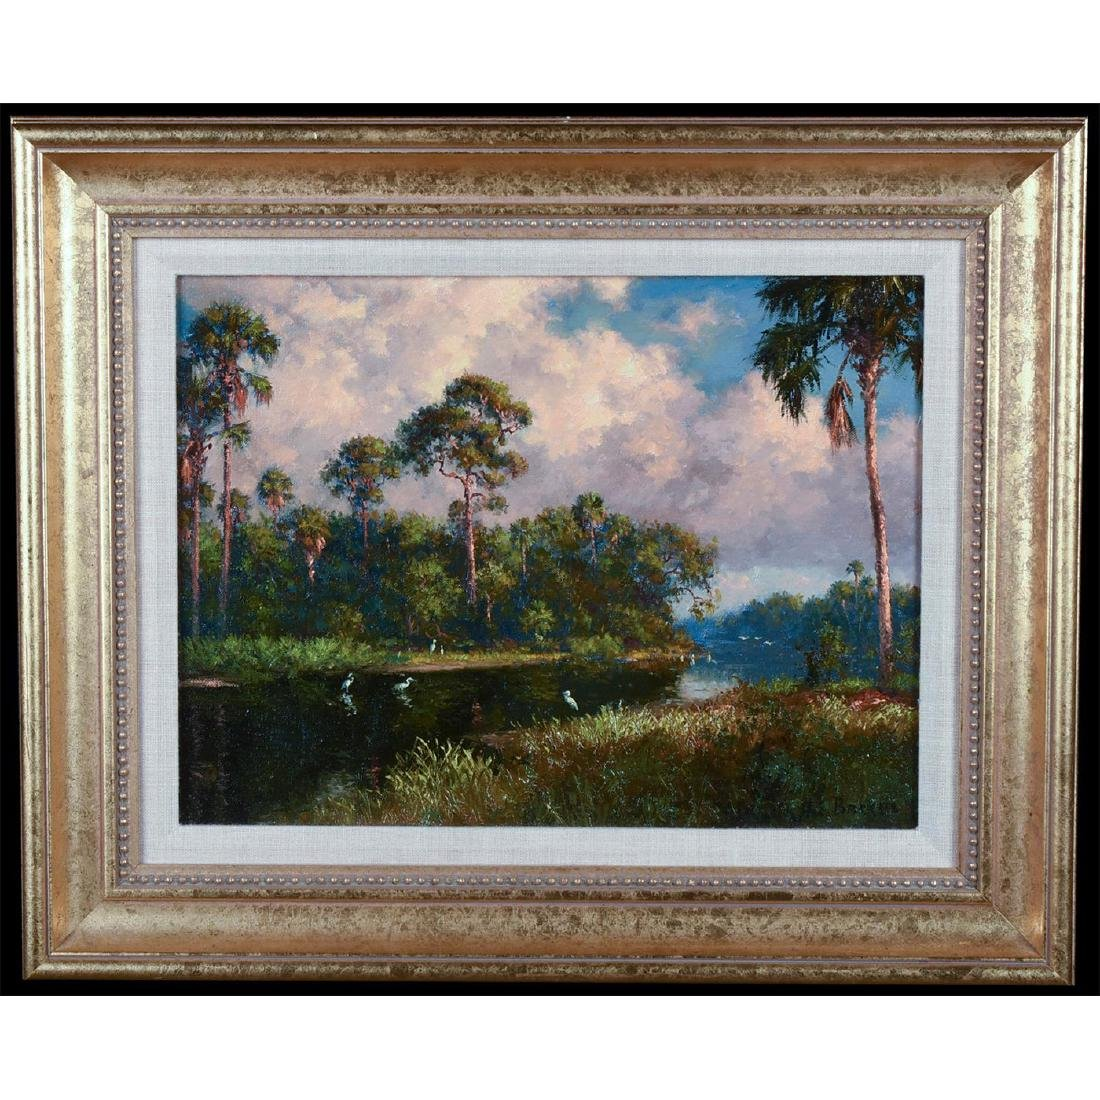 OIL PAINTING BY A.E. BACKUS (1906-1990)